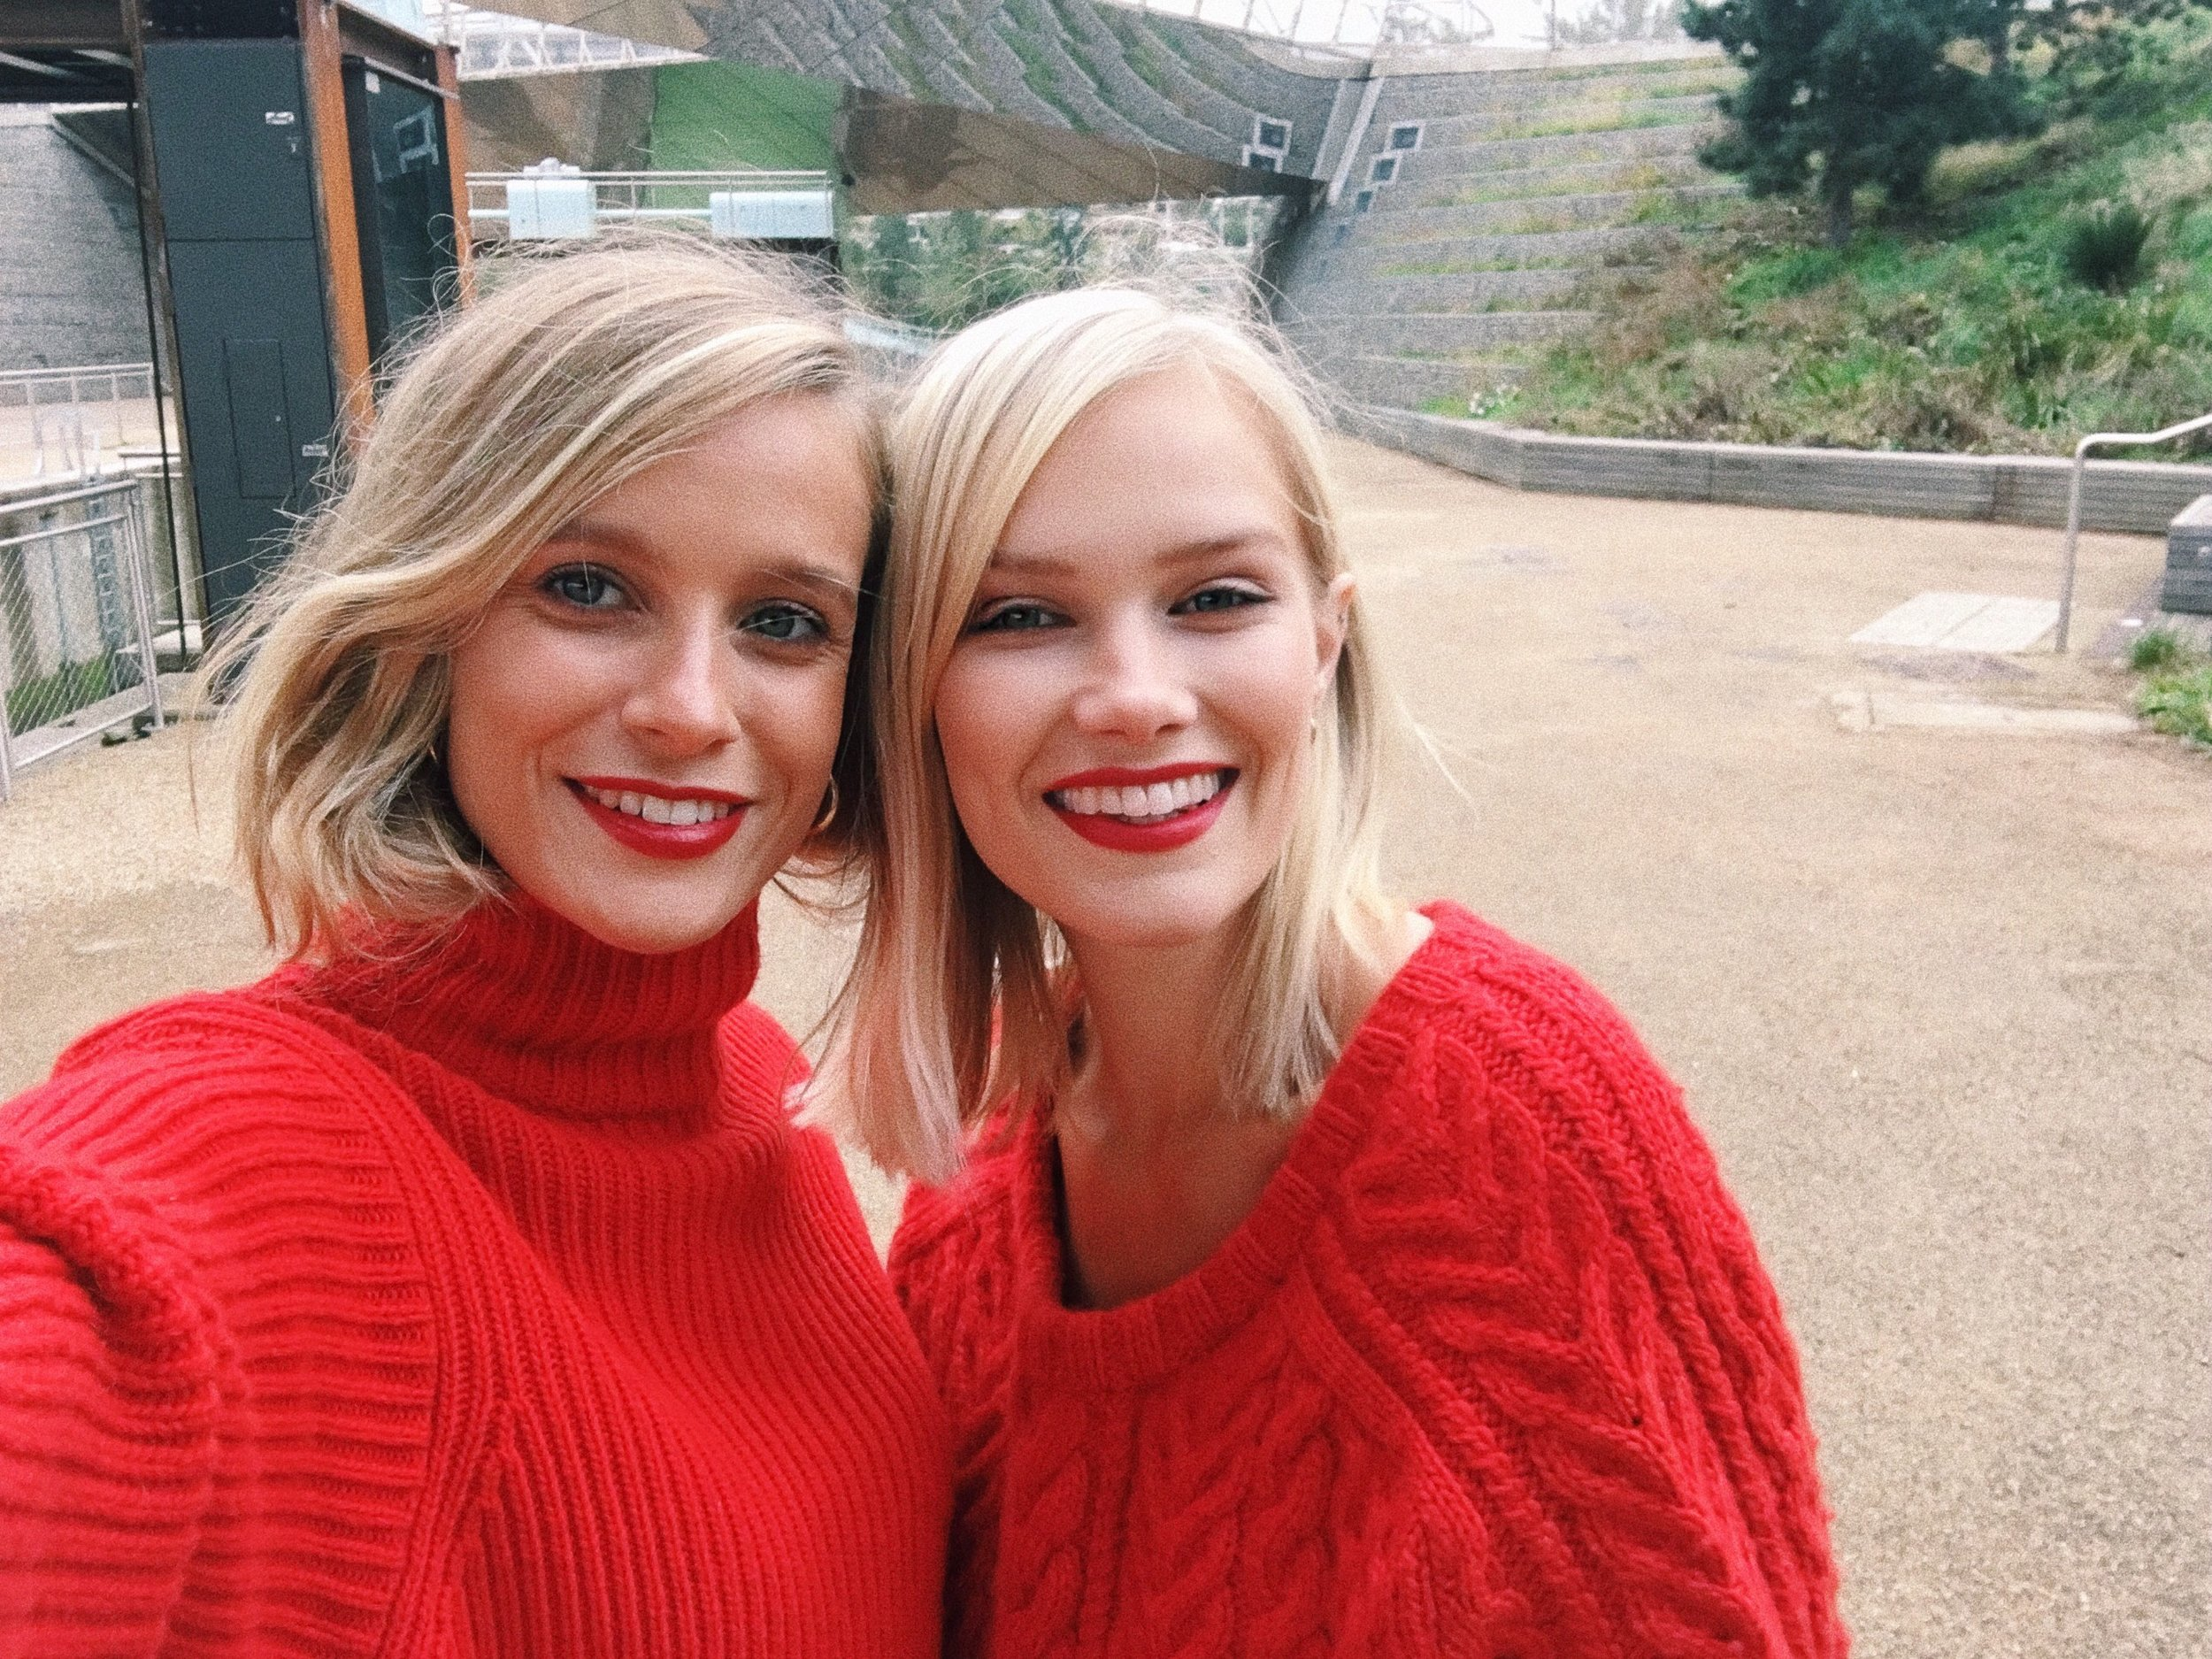 THE DUO - TODAY WE LOVE is run by German/Norwegian duo; Annabell and Sara who co-founded the award-winning blog the4ofus.co.uk in 2016 along with fellow model Zsanett Korosi. The trio ran the blog together for 3 years, winning multiple awards at the UK BLOG AWARDS in 2018.Below we're telling you a little bit about who we are, where we come from and what our backgrounds are. You will also find a little Q&A each of us has answered.Find more information about todaywelove.uk on our ABOUT page as well as the full Q & A's.